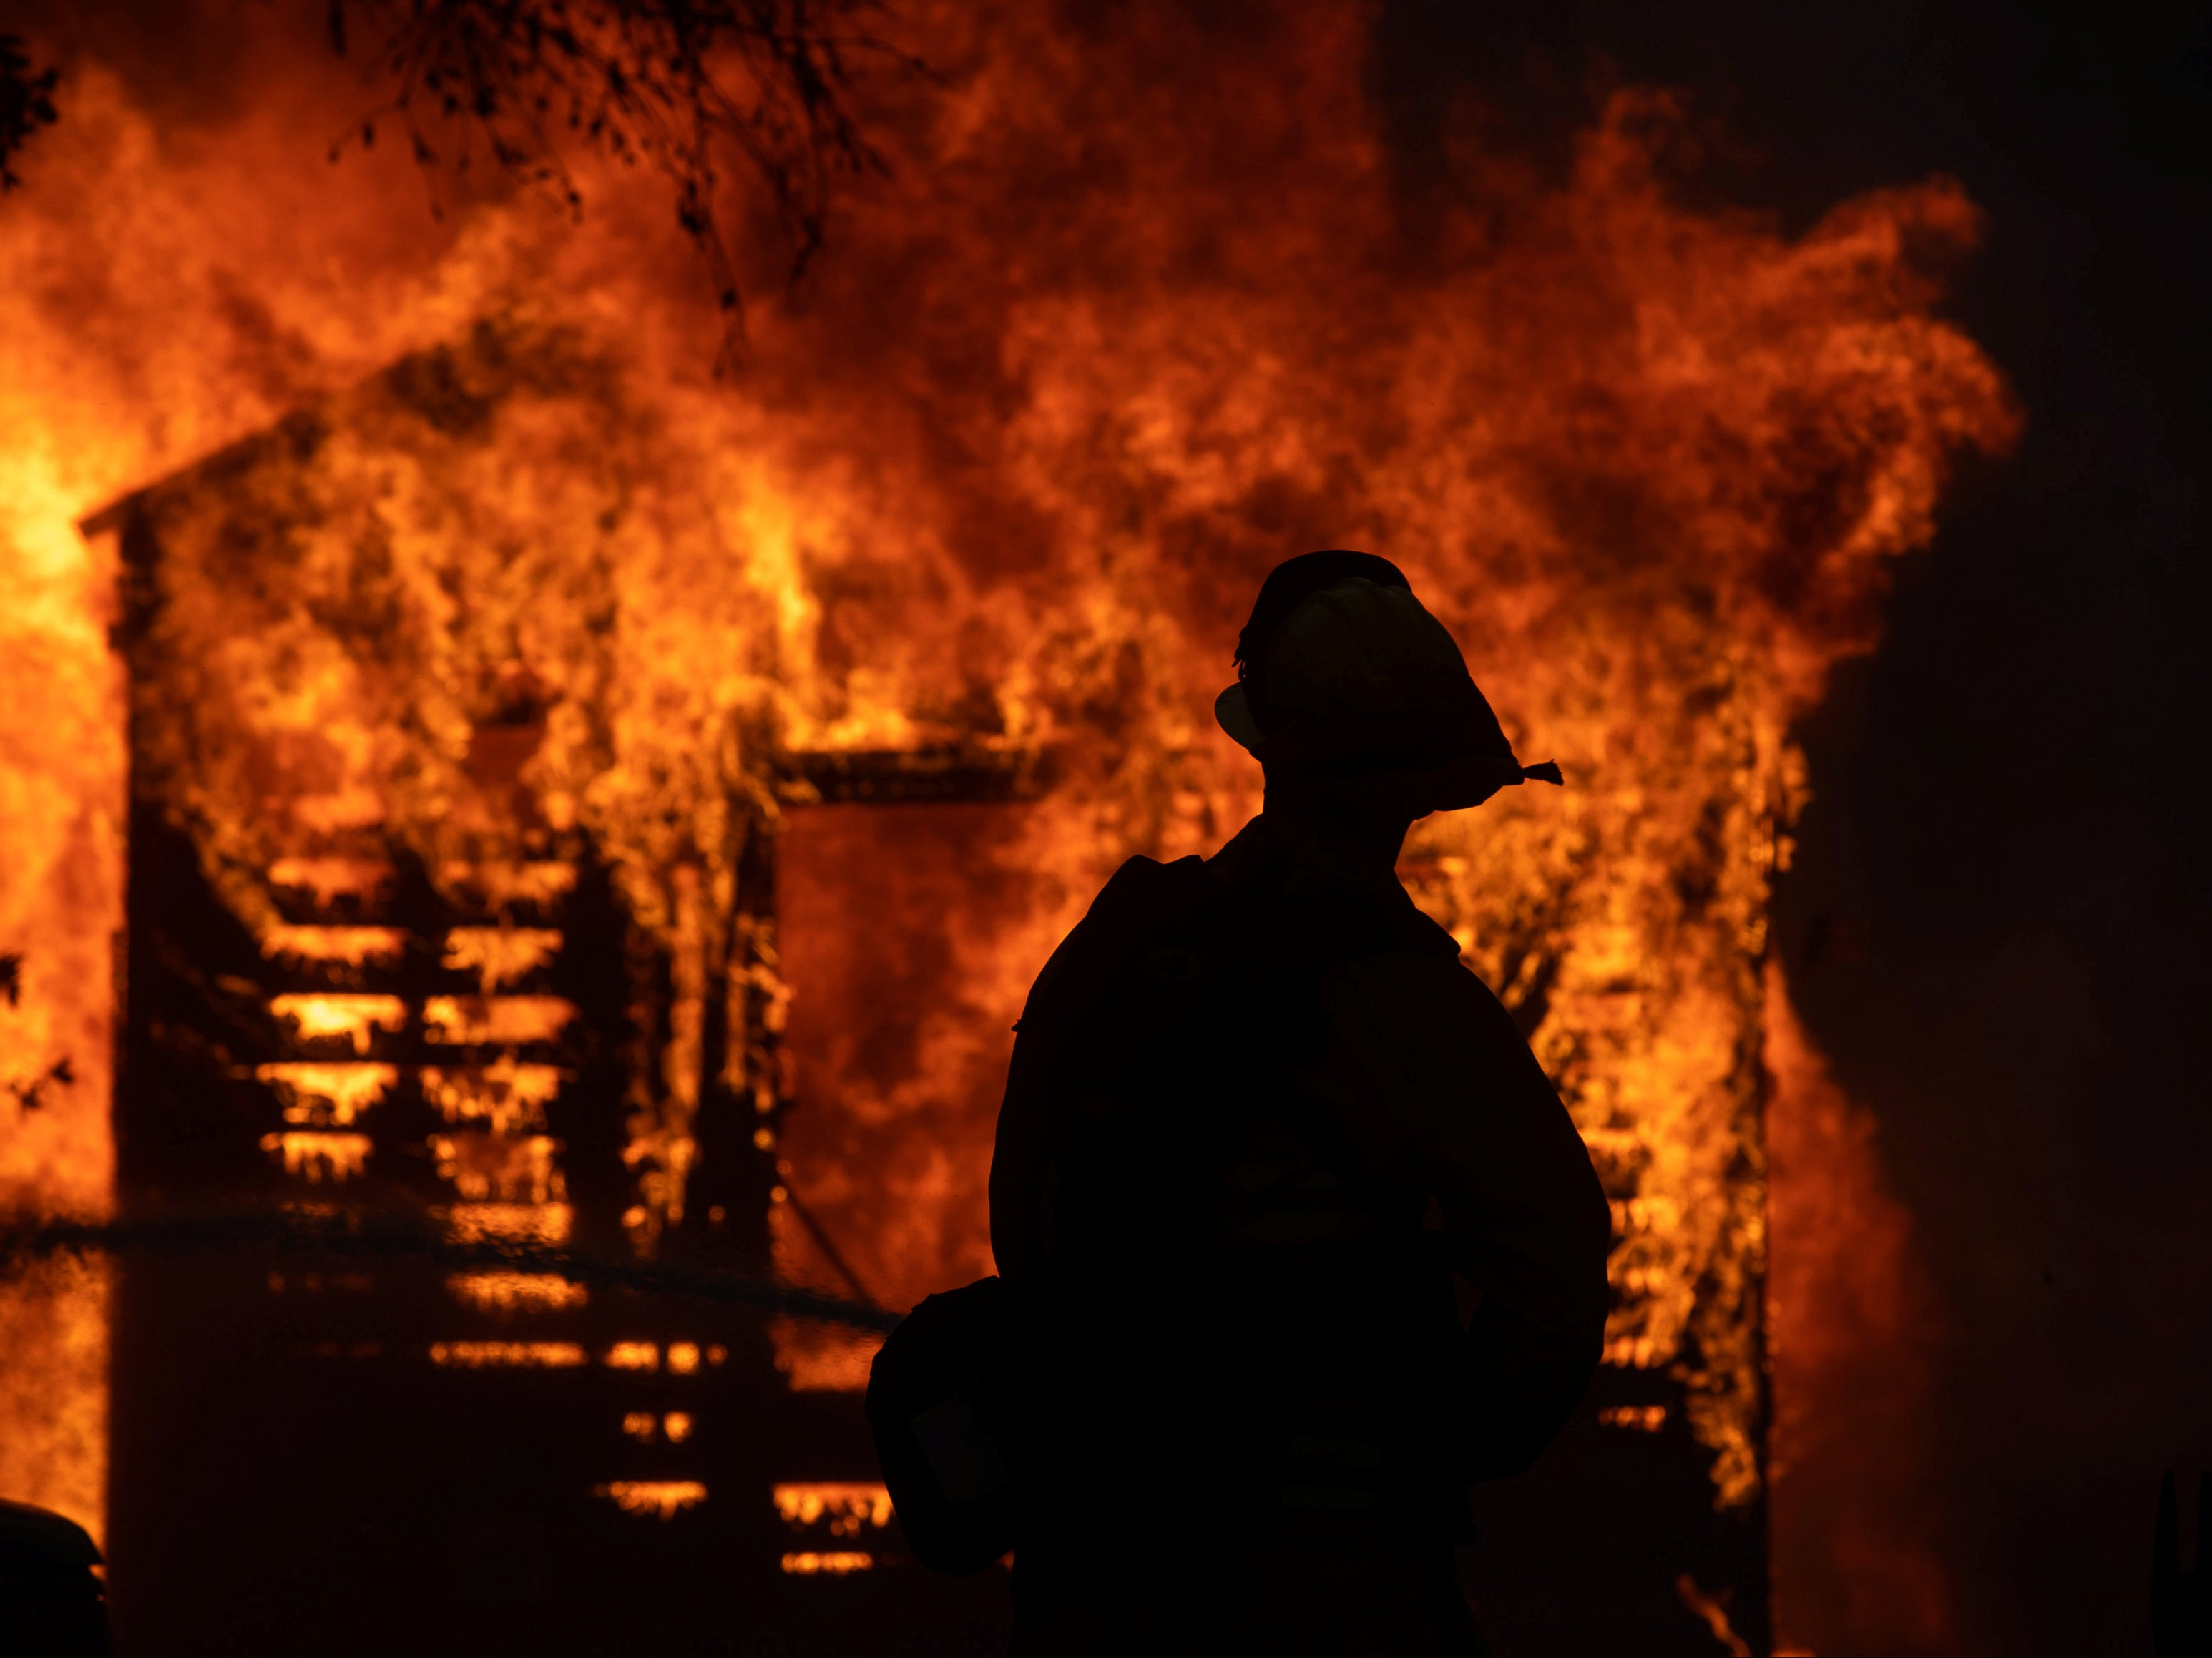 California wildfires: Haunting images show devastation caused by latest blaze - independent